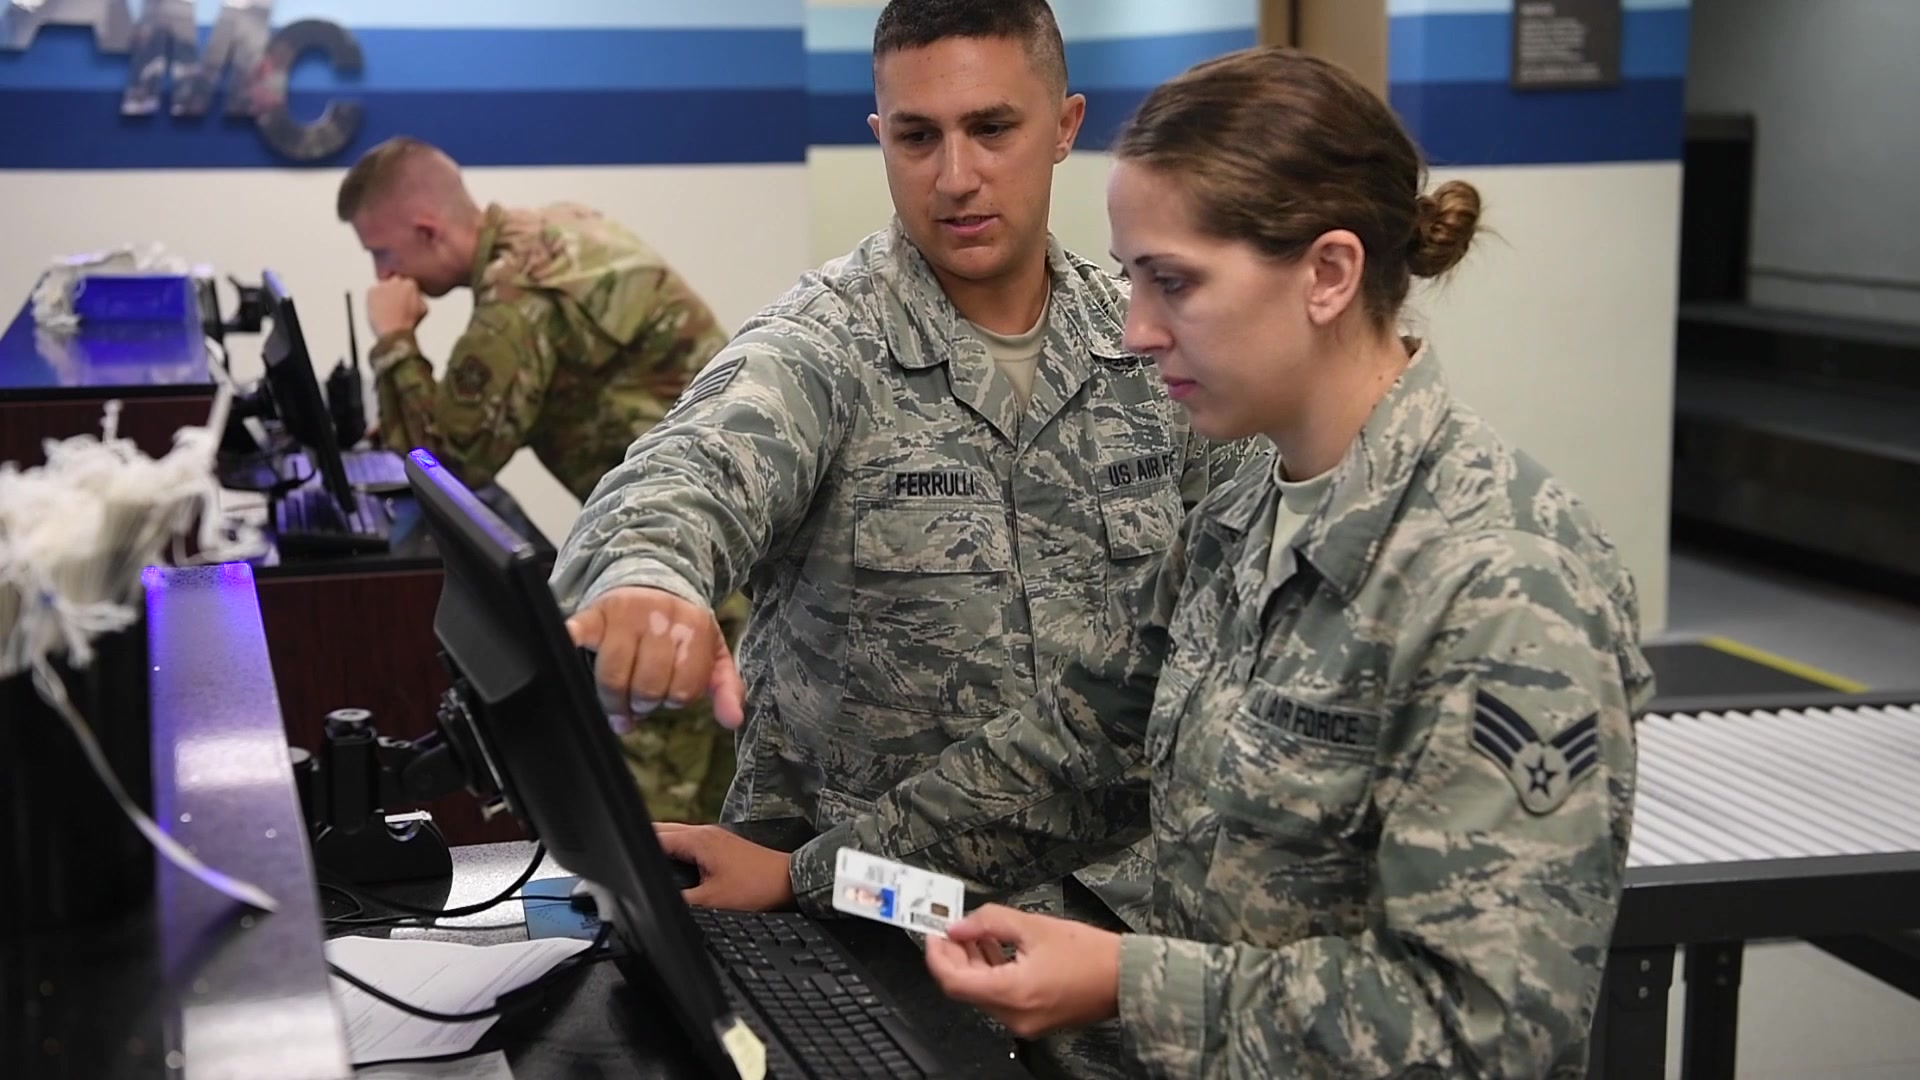 An Air Force Reservist works alongside active duty personnel to accomplish air transportation specialist responsibilities.